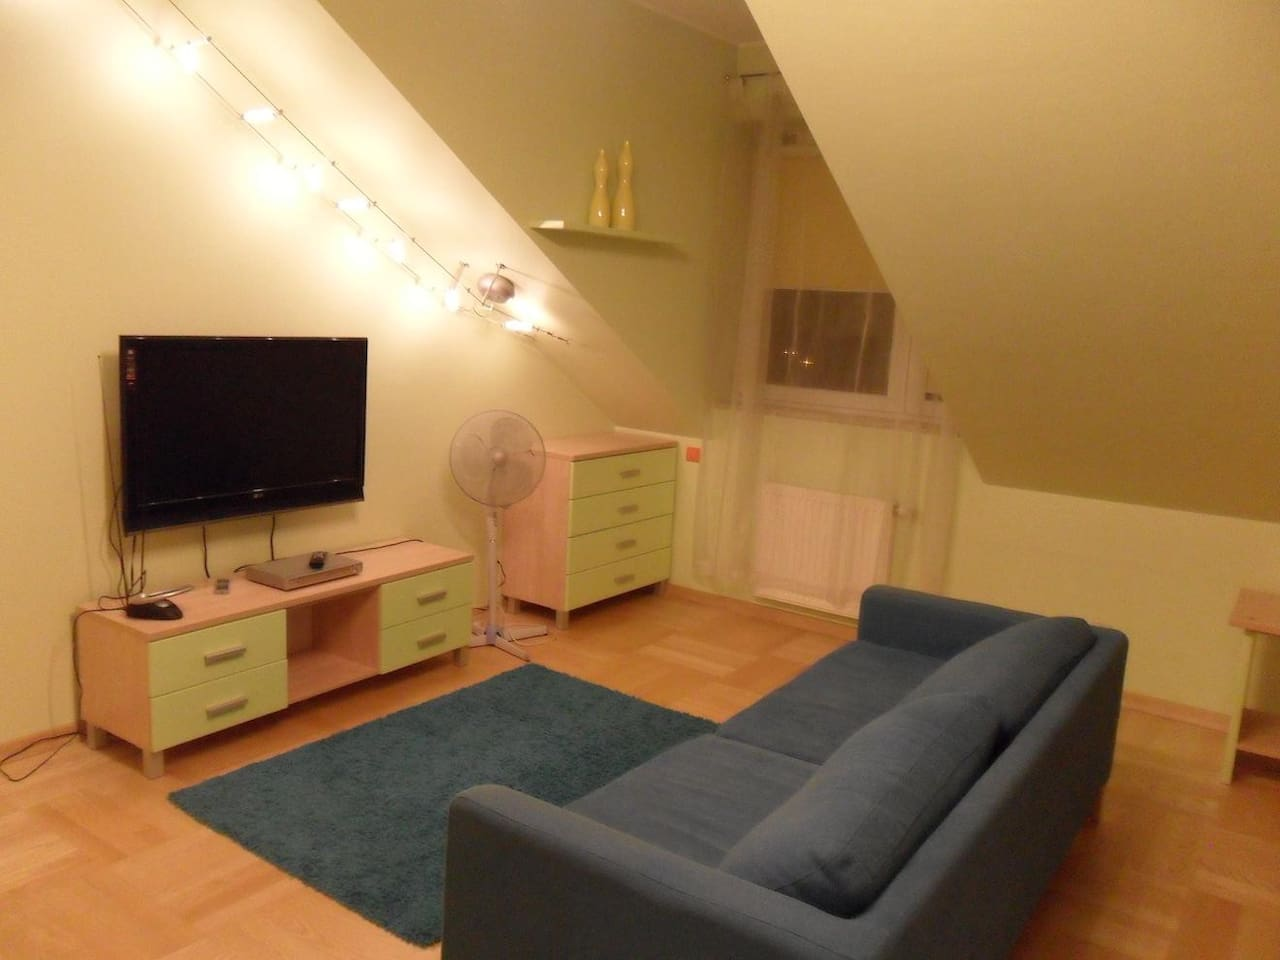 living room with bed/ salon